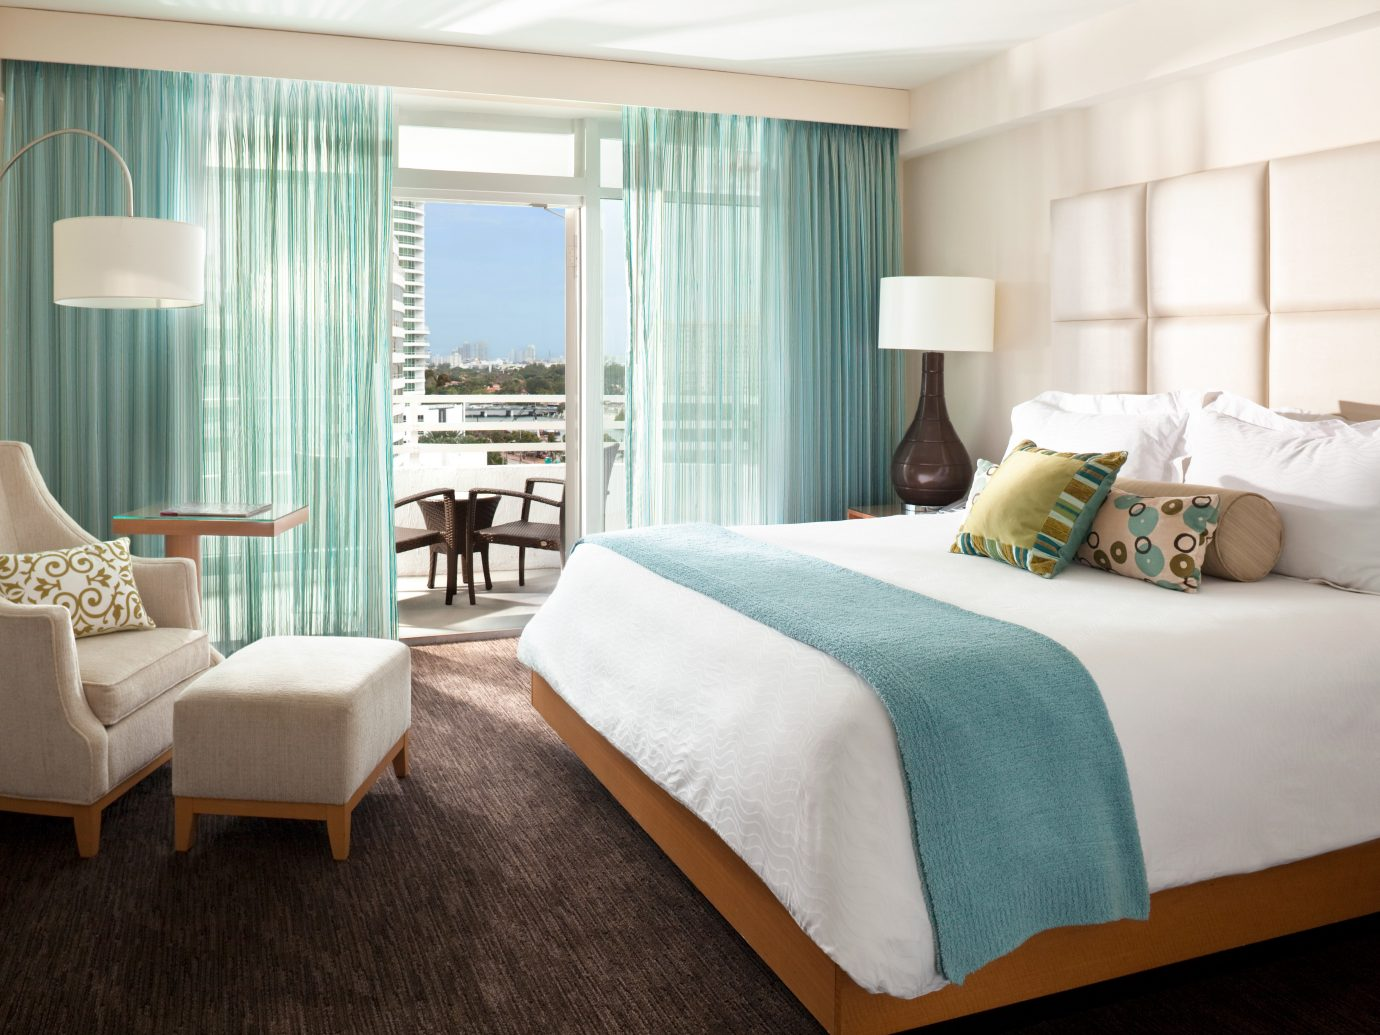 Bedroom at Fontainebleau Miami Beach